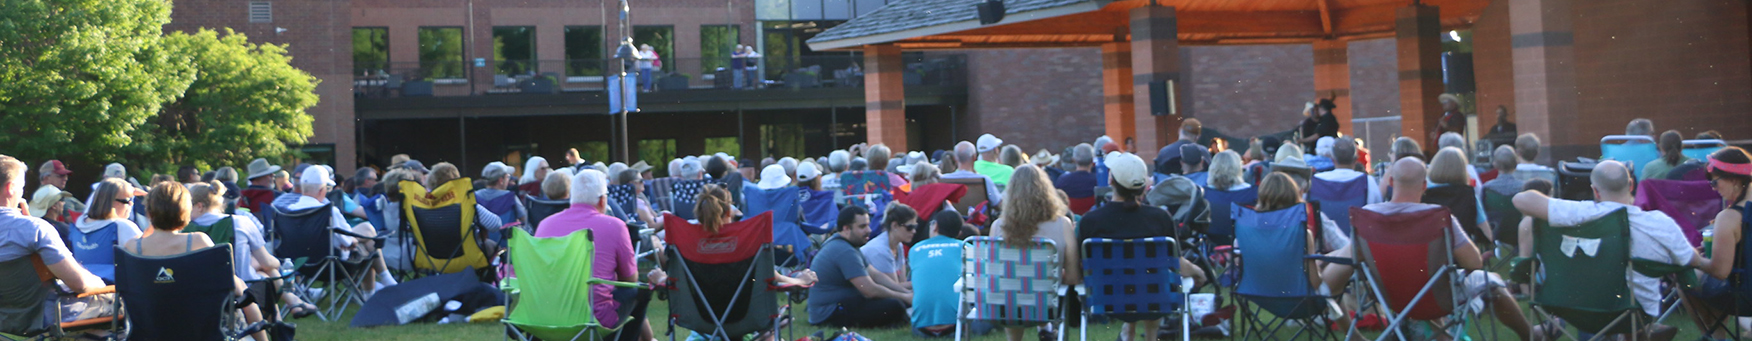 Summer concert at Shoreview Community Center with concert goers in folding chairs on the lawn